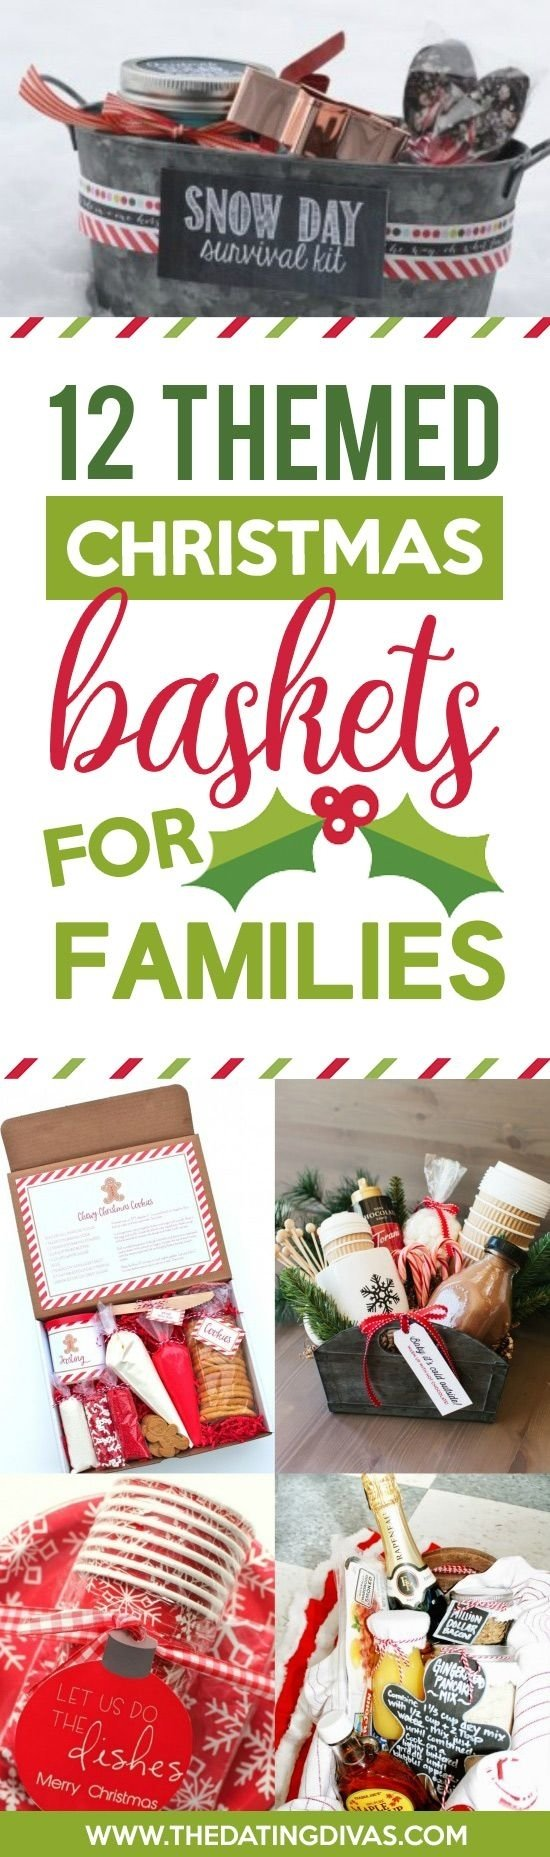 50 themed christmas basket ideas | christmas gifts, gift and holidays